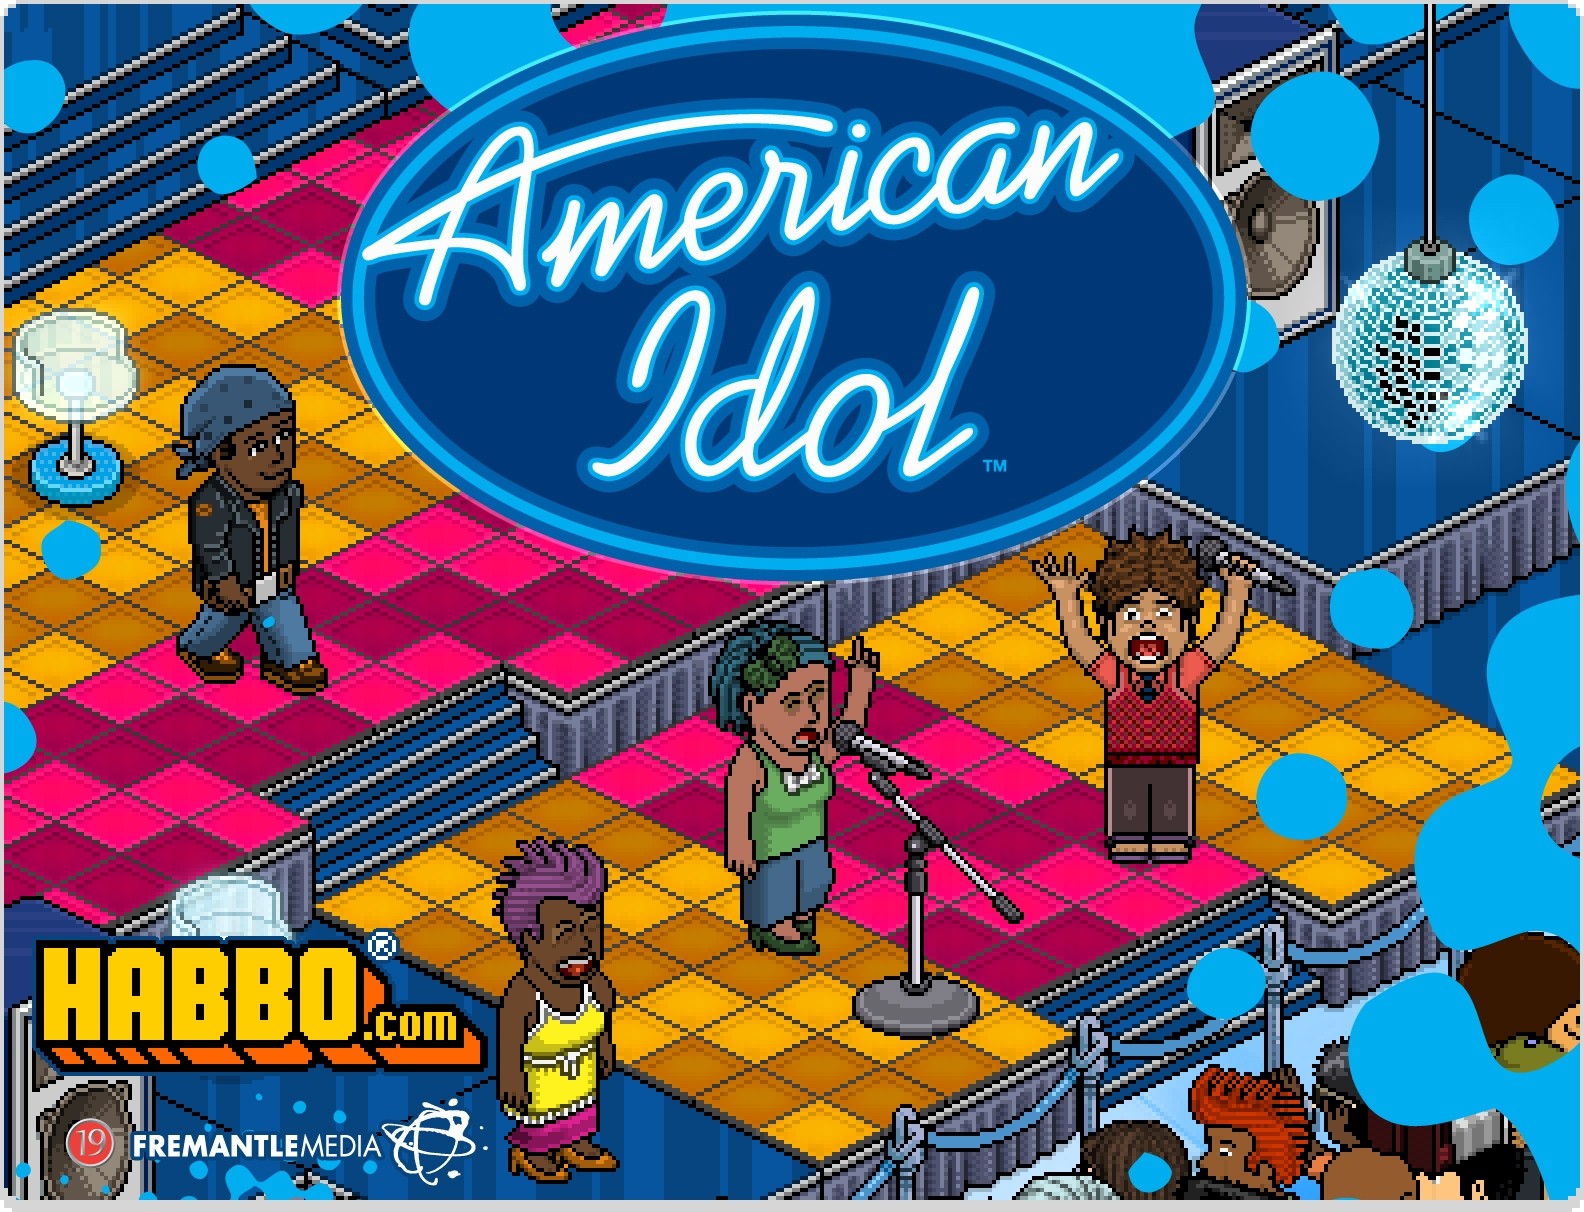 american idol a big hit for marketing research The marketing research problem is to determine who the viewers actually are and their motivations for voting for american idol contestants specifically, research will seek to answer the following questions a what is the demographic profile of the american idol audience b what is the psychographic profile of the american idol audience c.